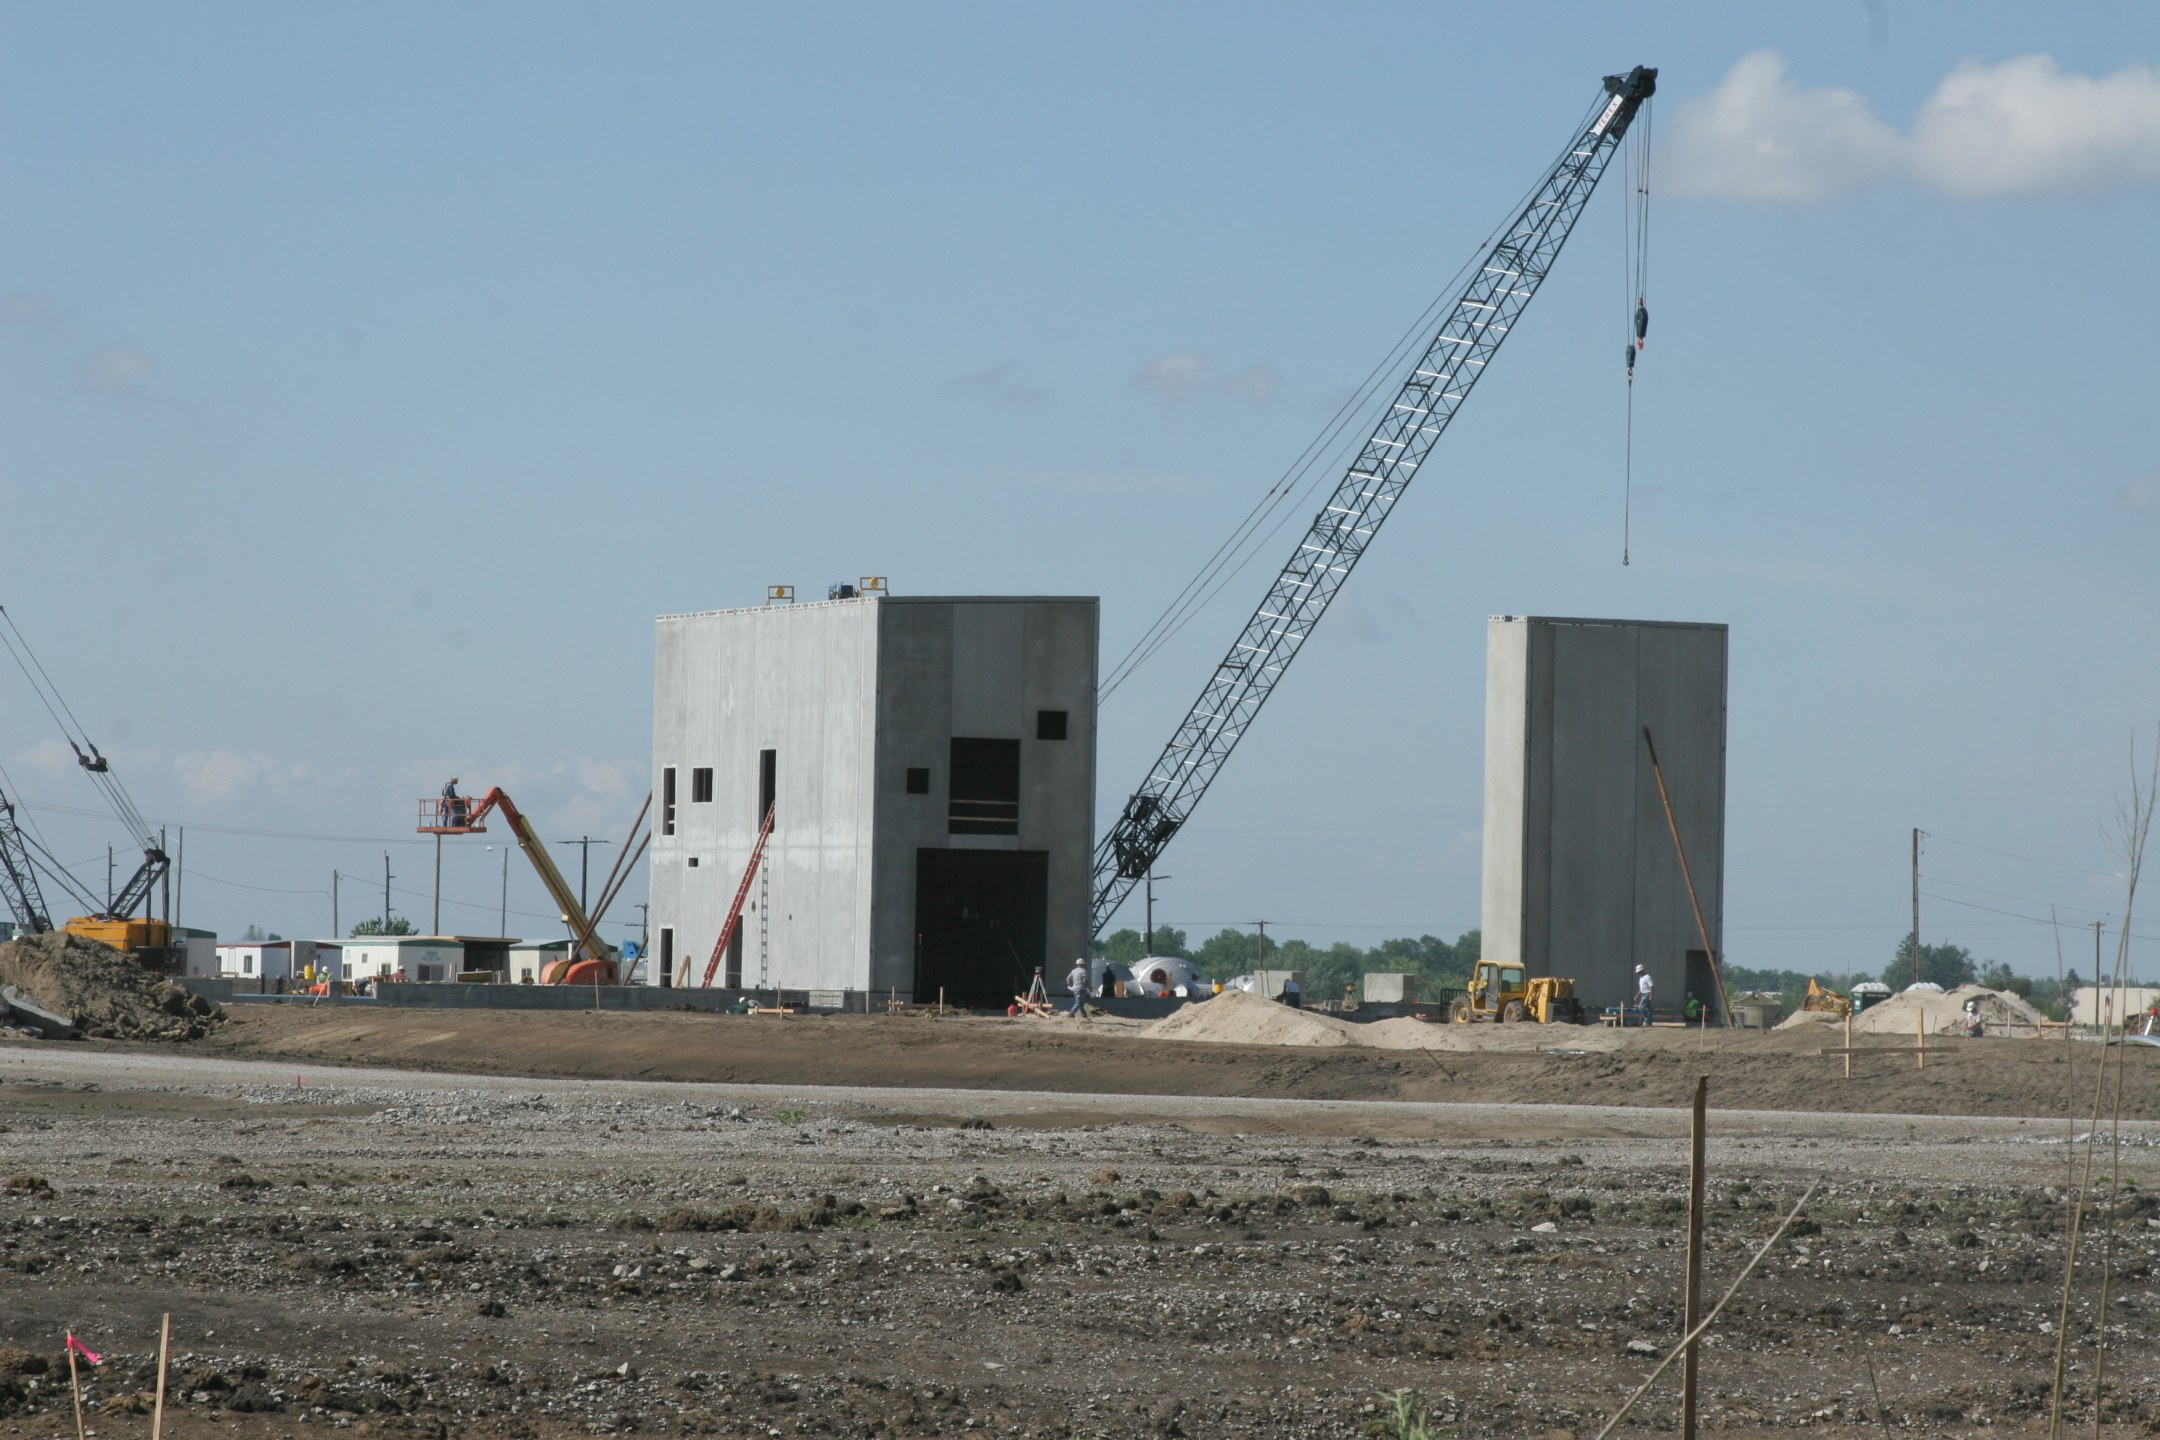 A look at the ethanol plant under construction on the northwest corner of the Newton yard